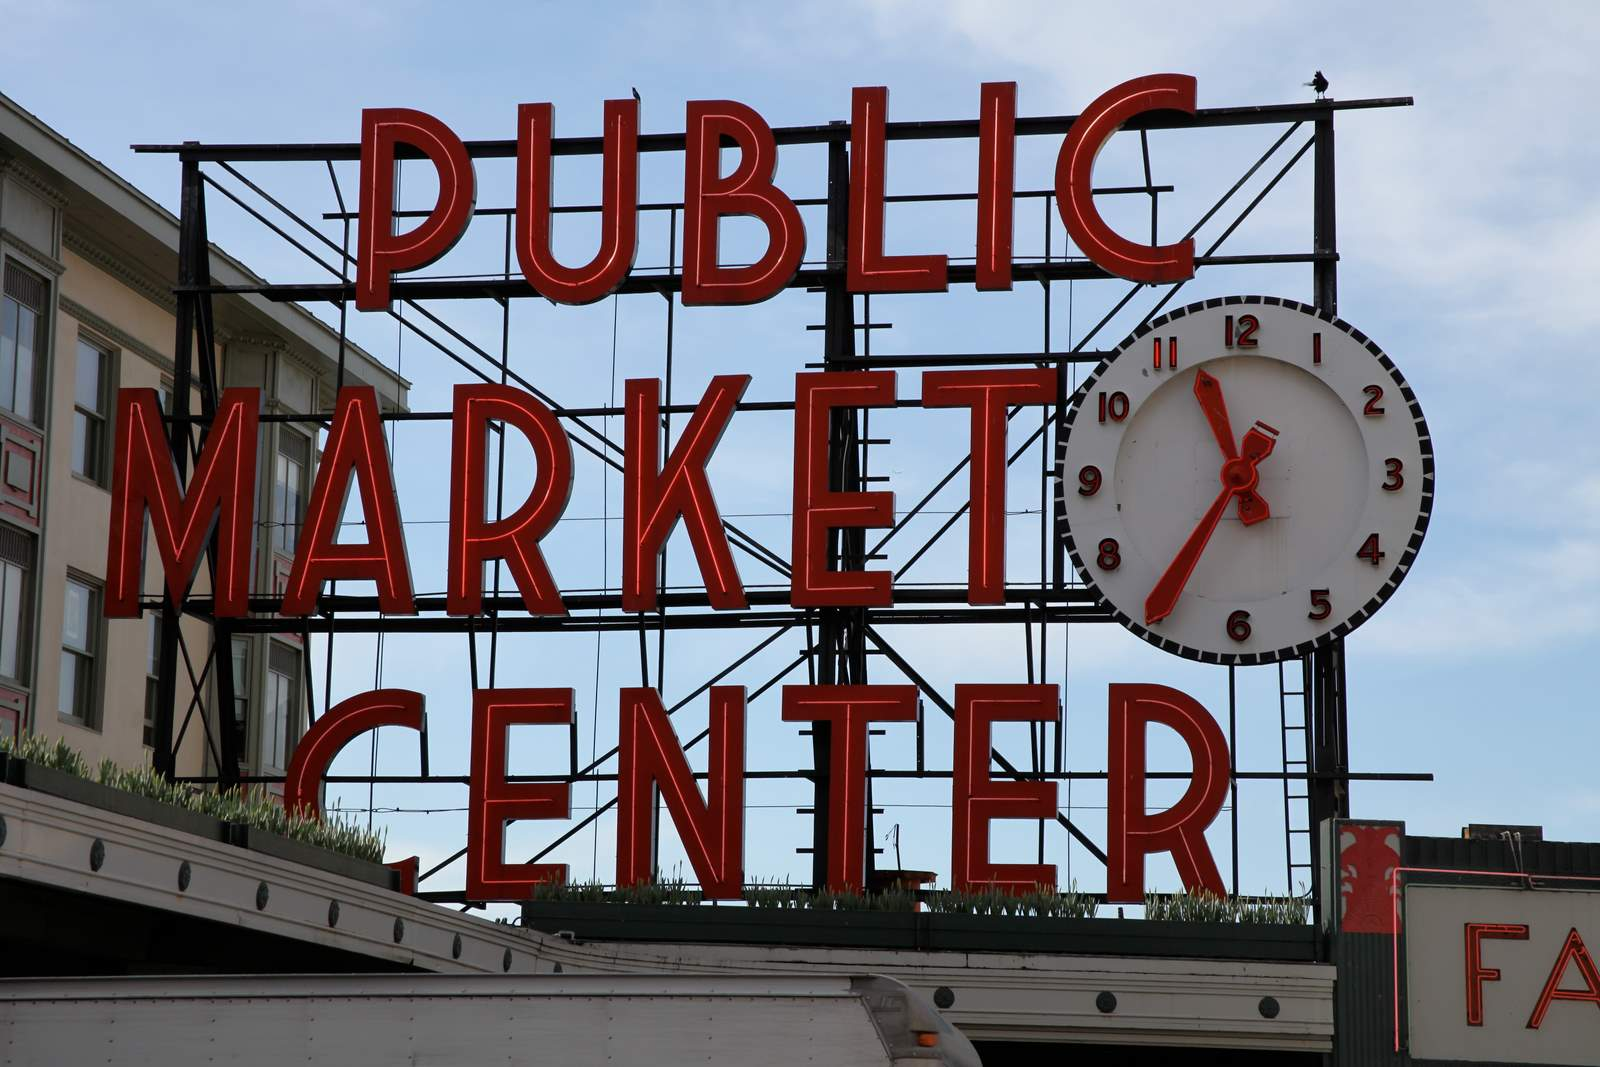 seattle-public-market-center (1)